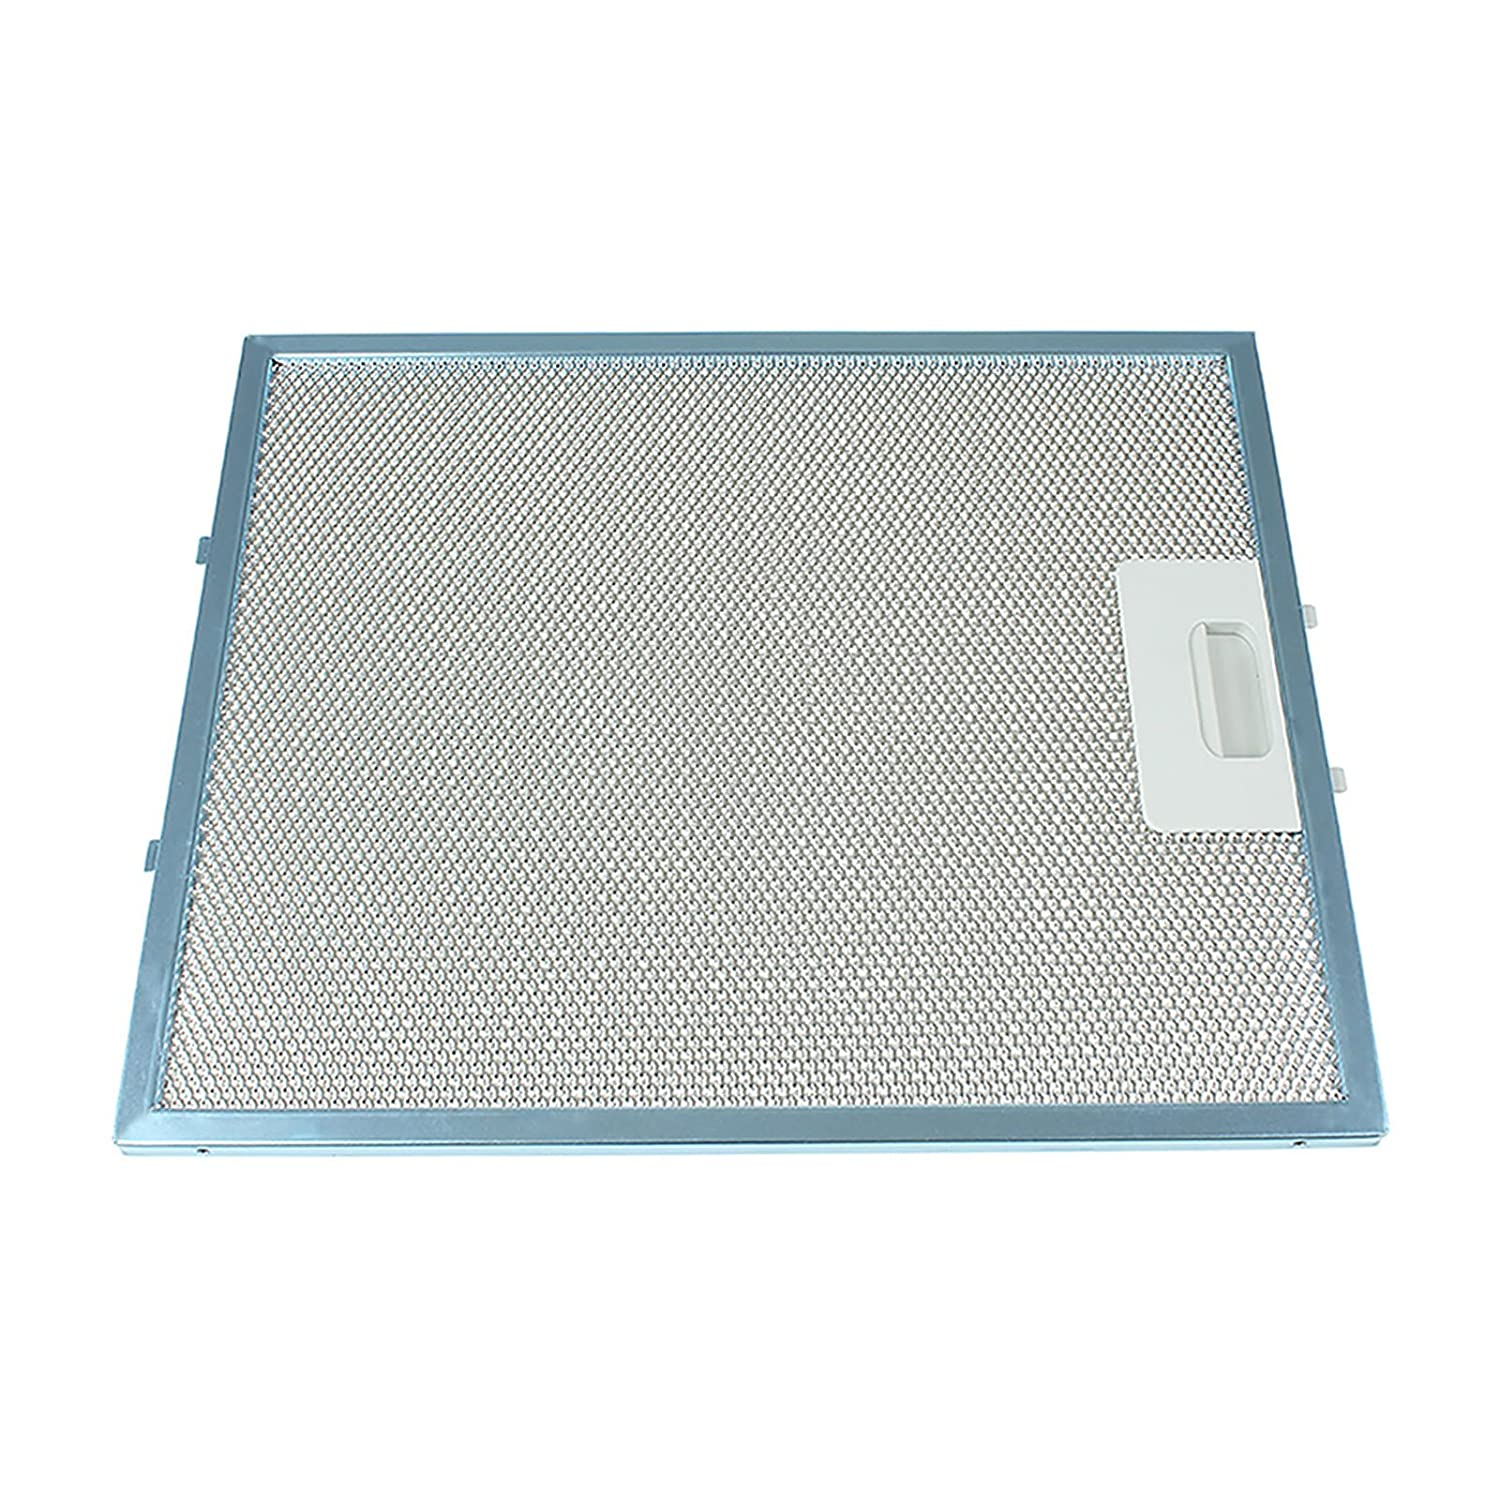 First4Spares Premium Metal Mesh Grease Filter for Cooker Hood Extractor Fans - 30cm x 25cm